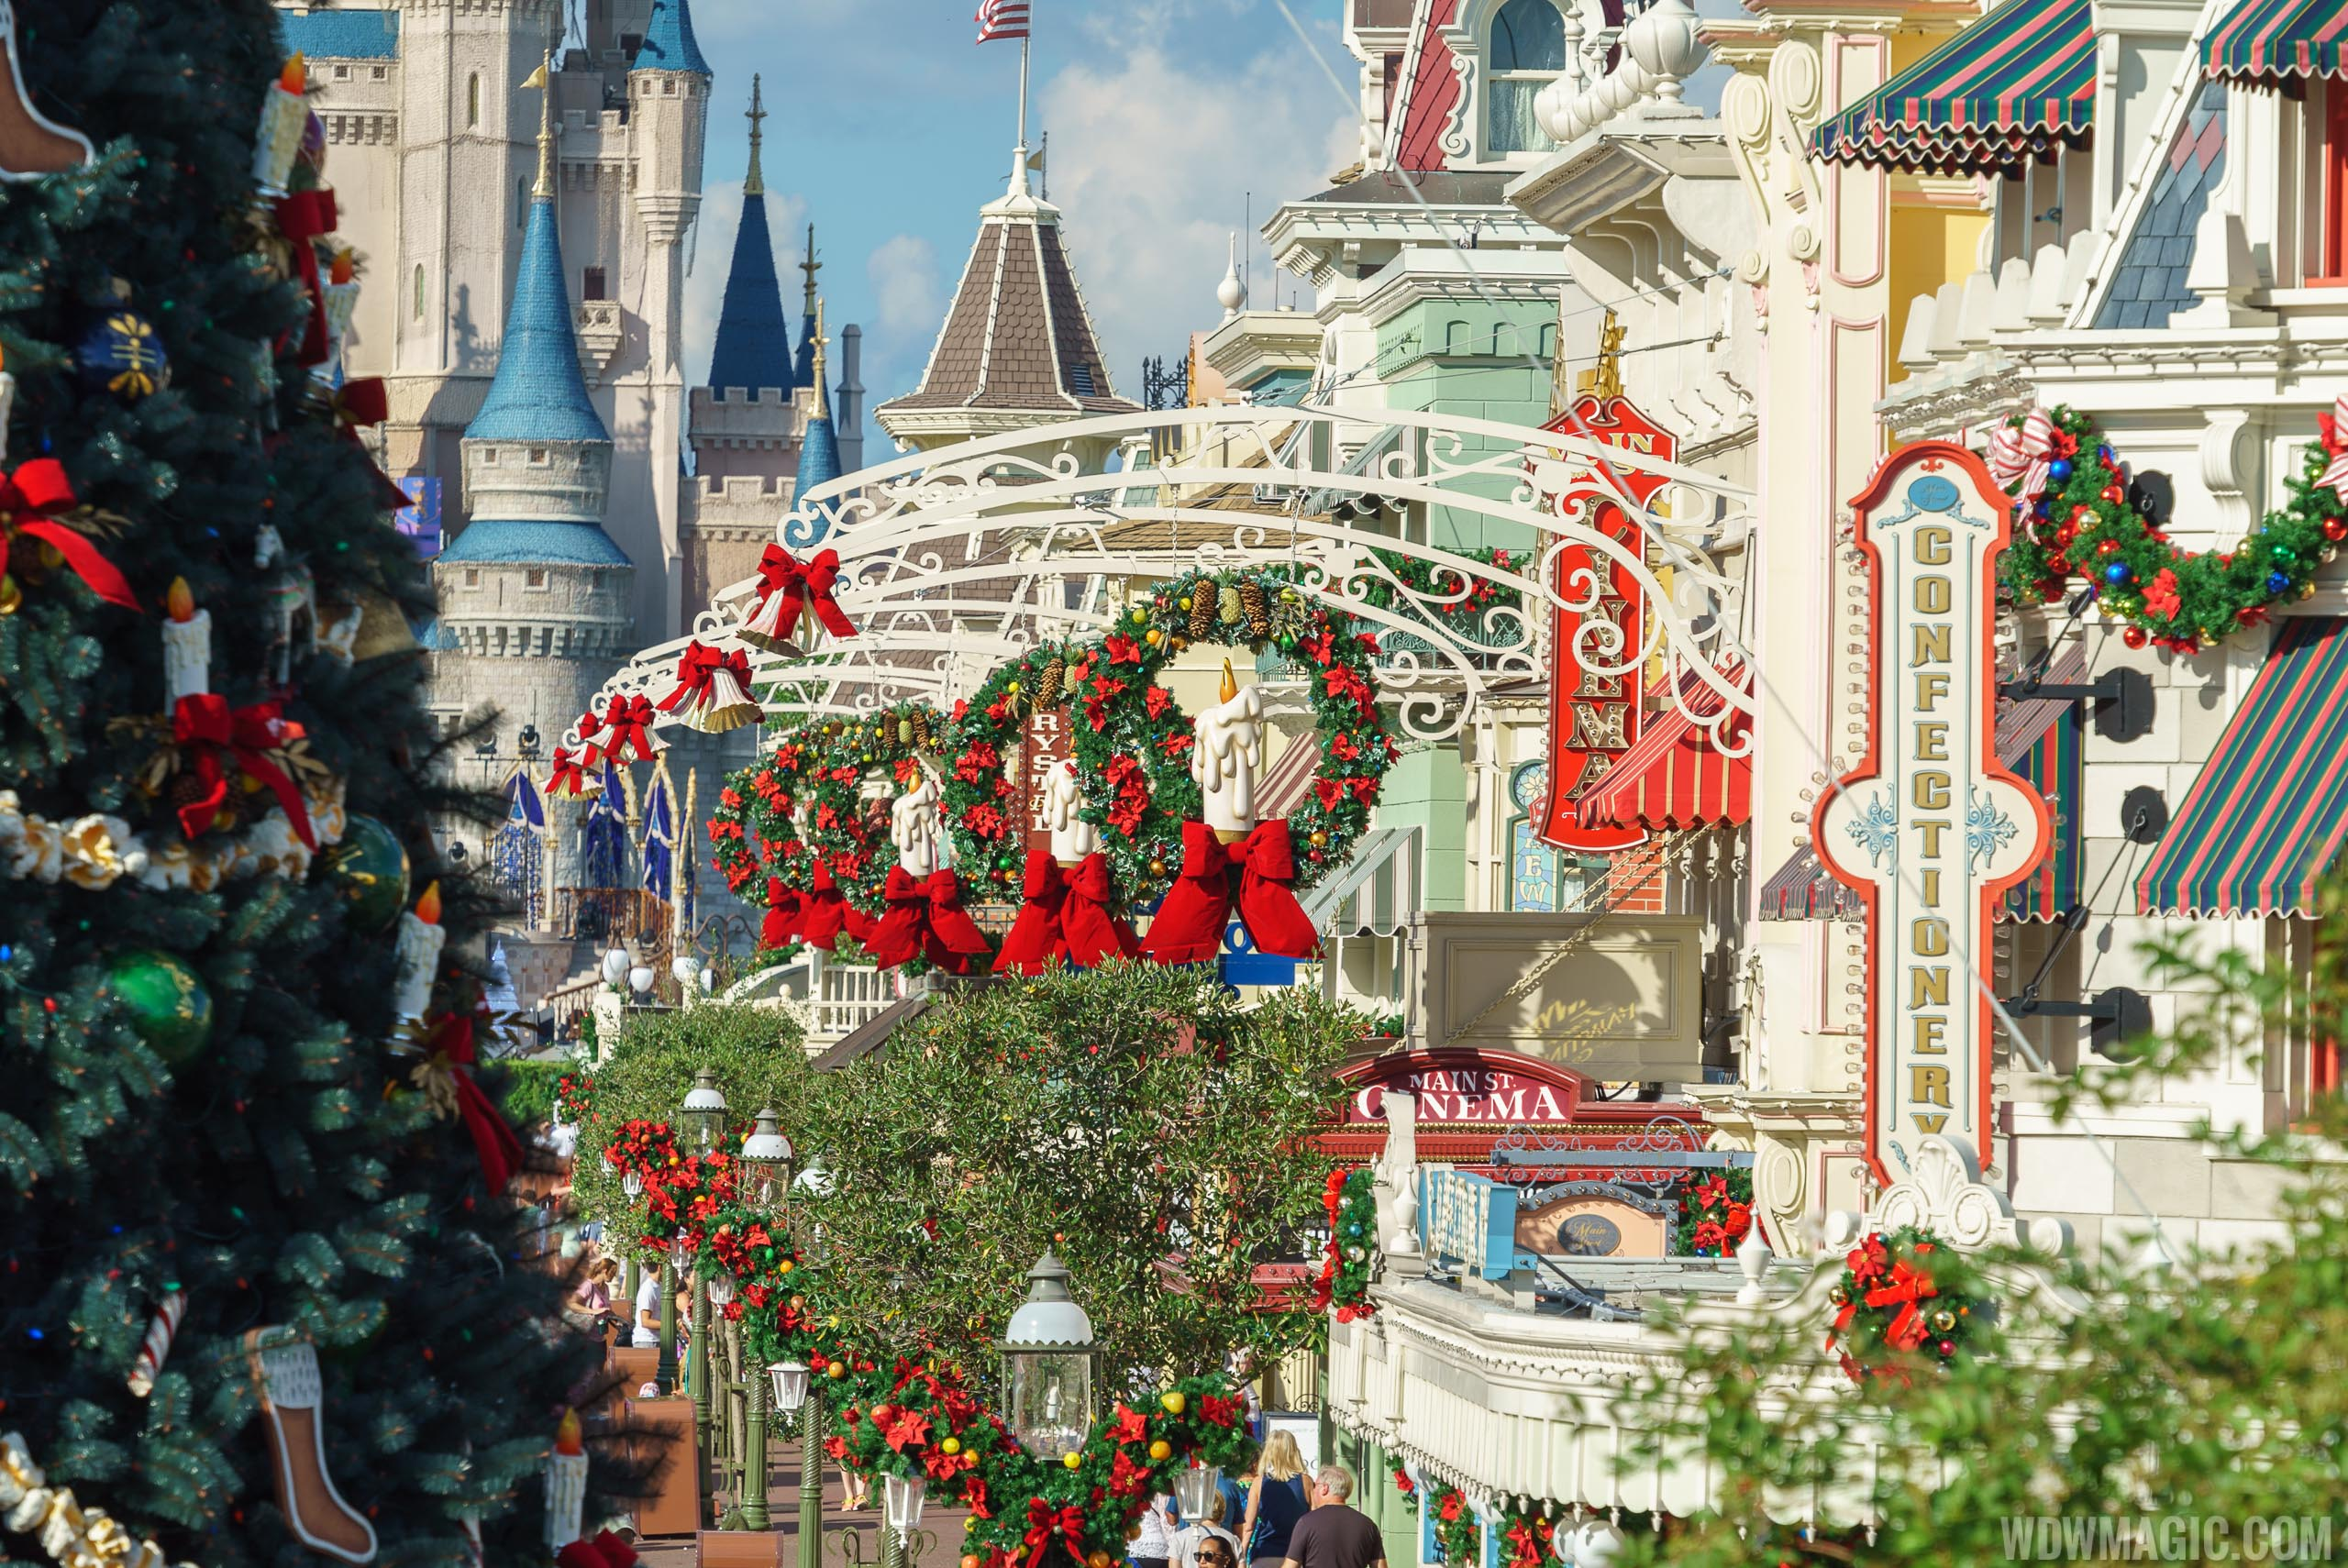 photos the magic kingdoms 2017 christmas holiday decorations - Christmas 2017 Decorations